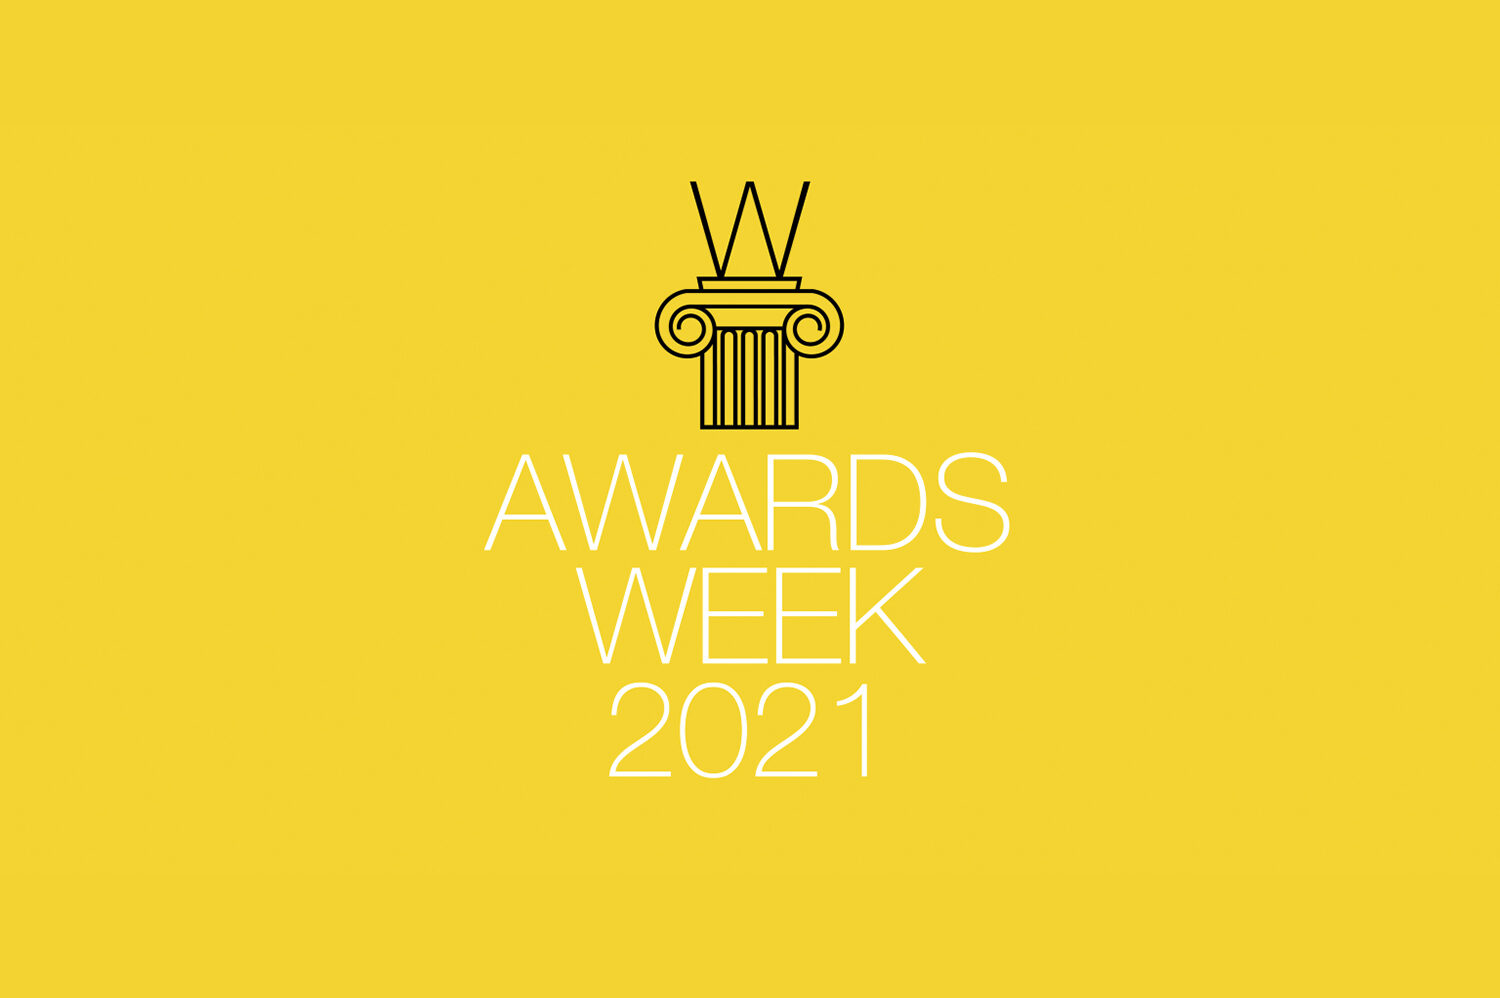 W Awards Week 2021